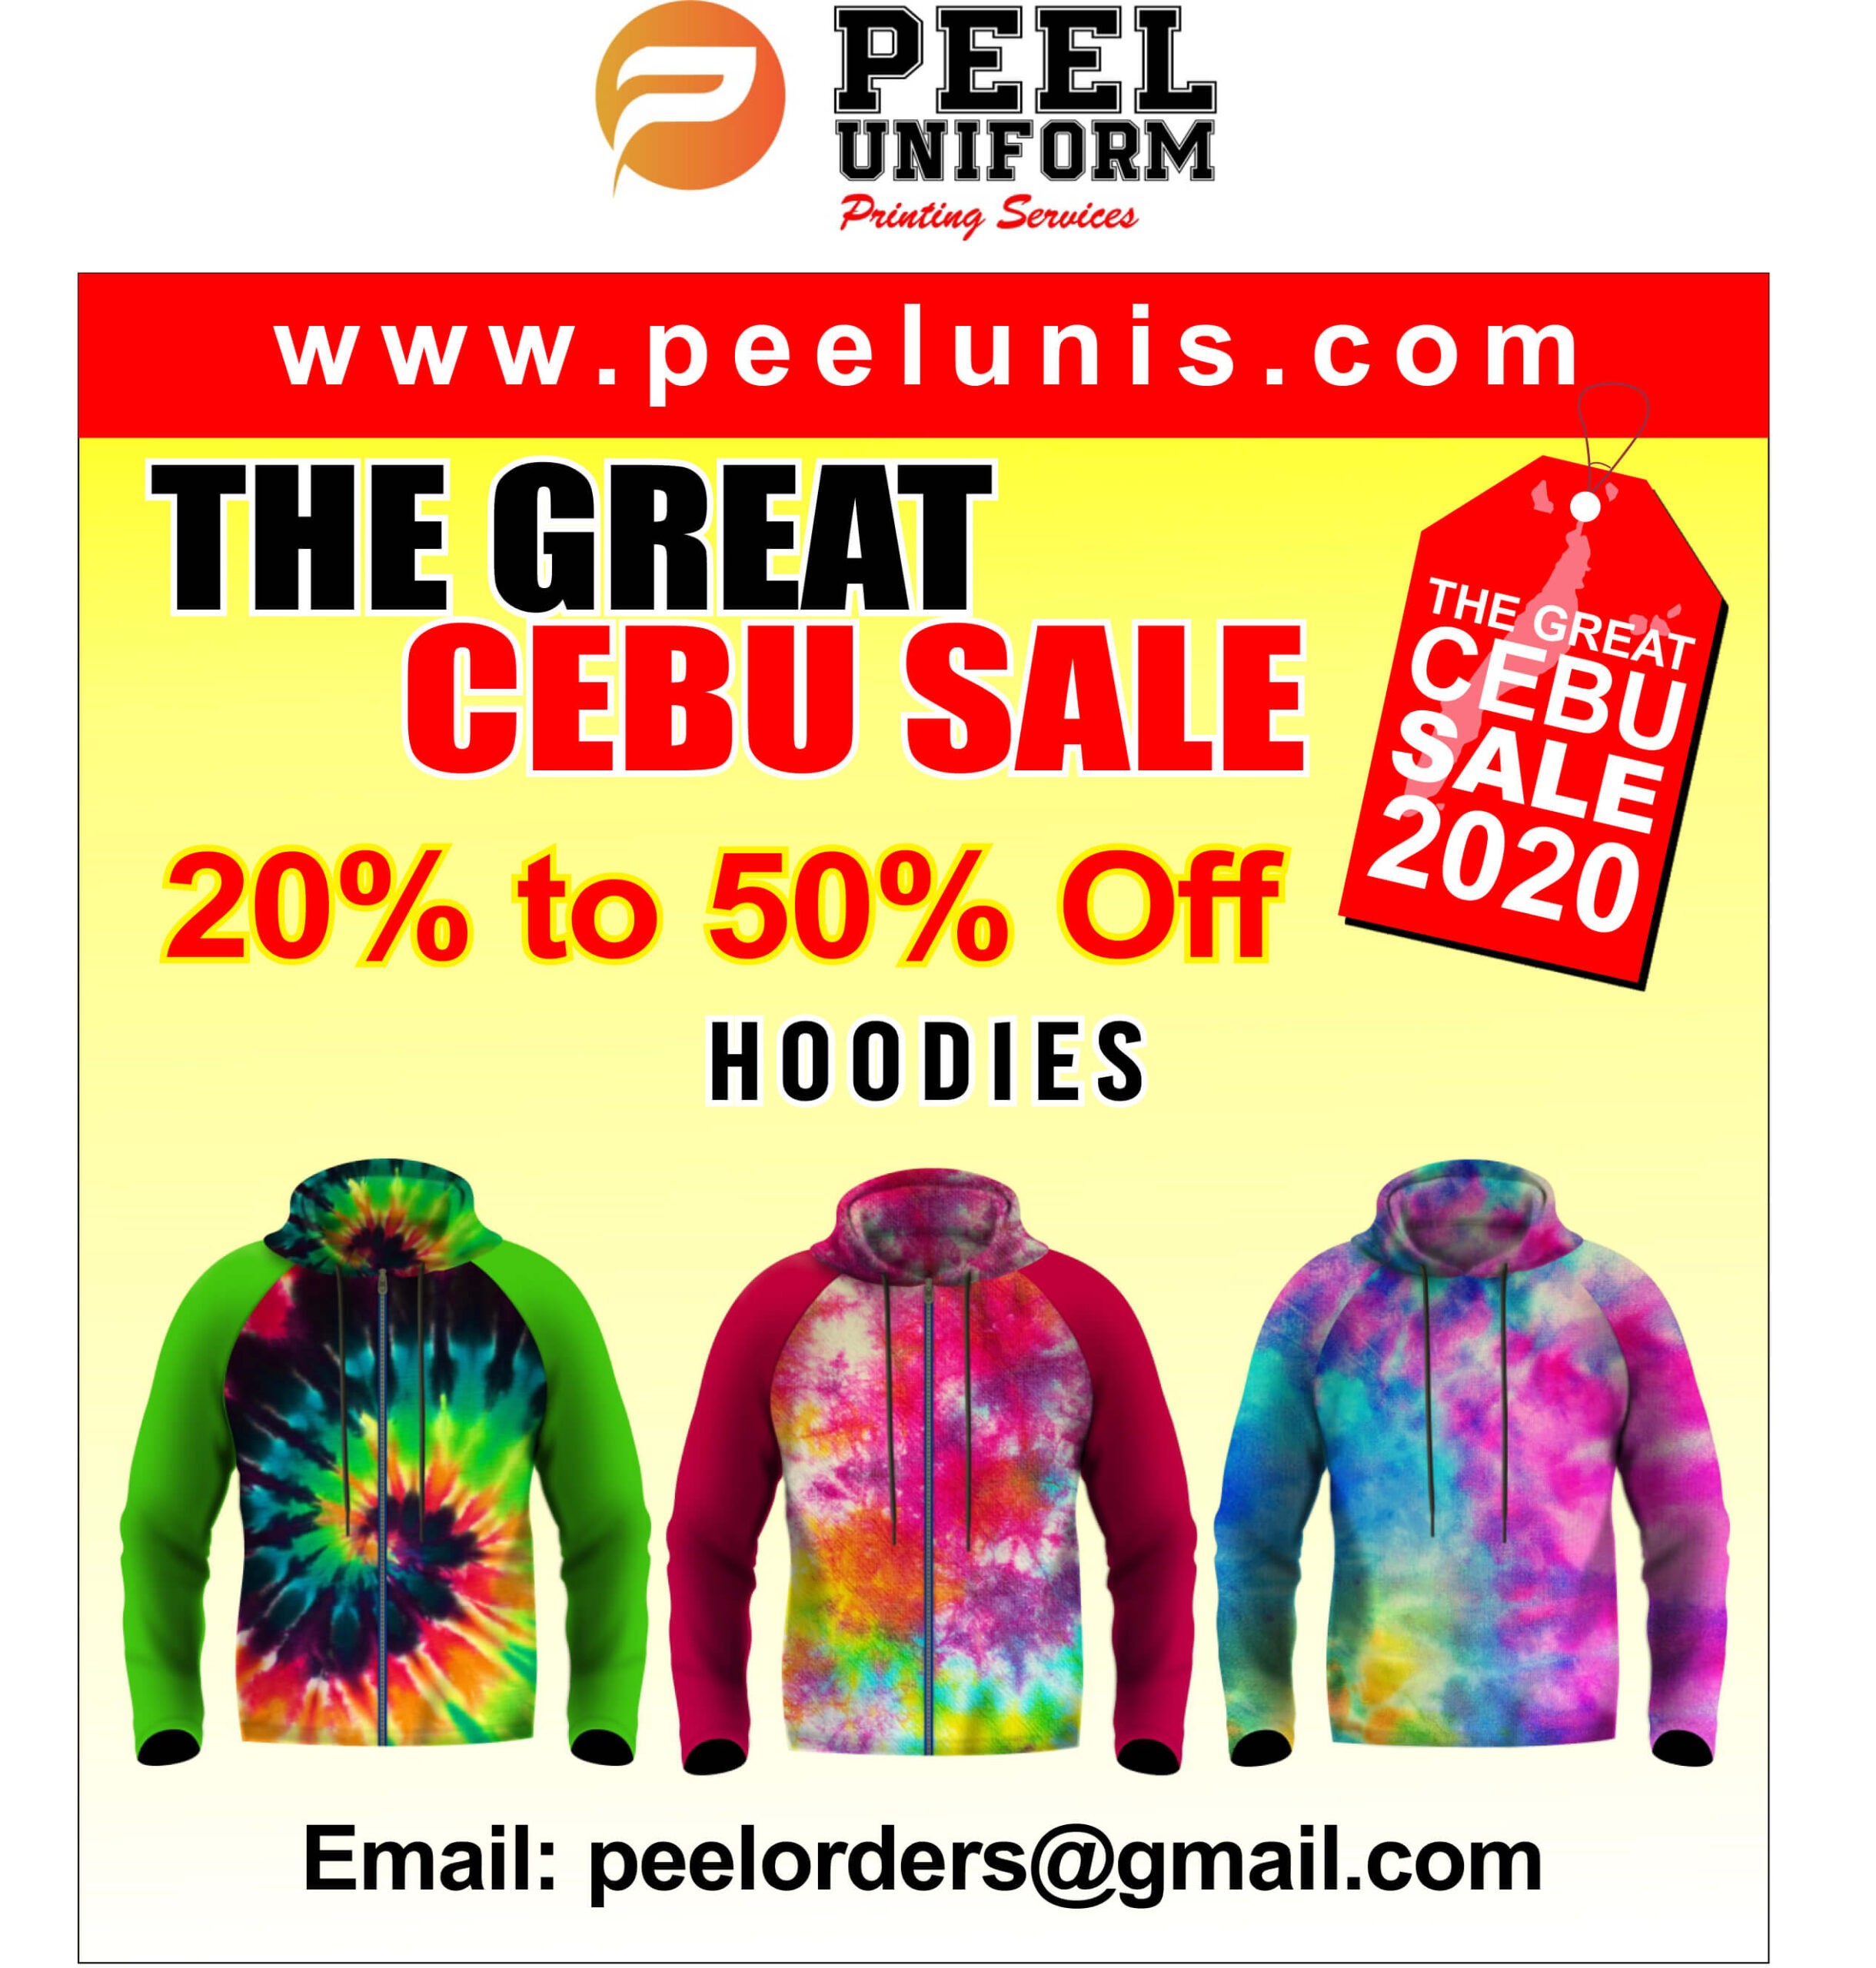 Peel Uniforms offers from 20% to 50% discount on shirts, hoodies, etc.